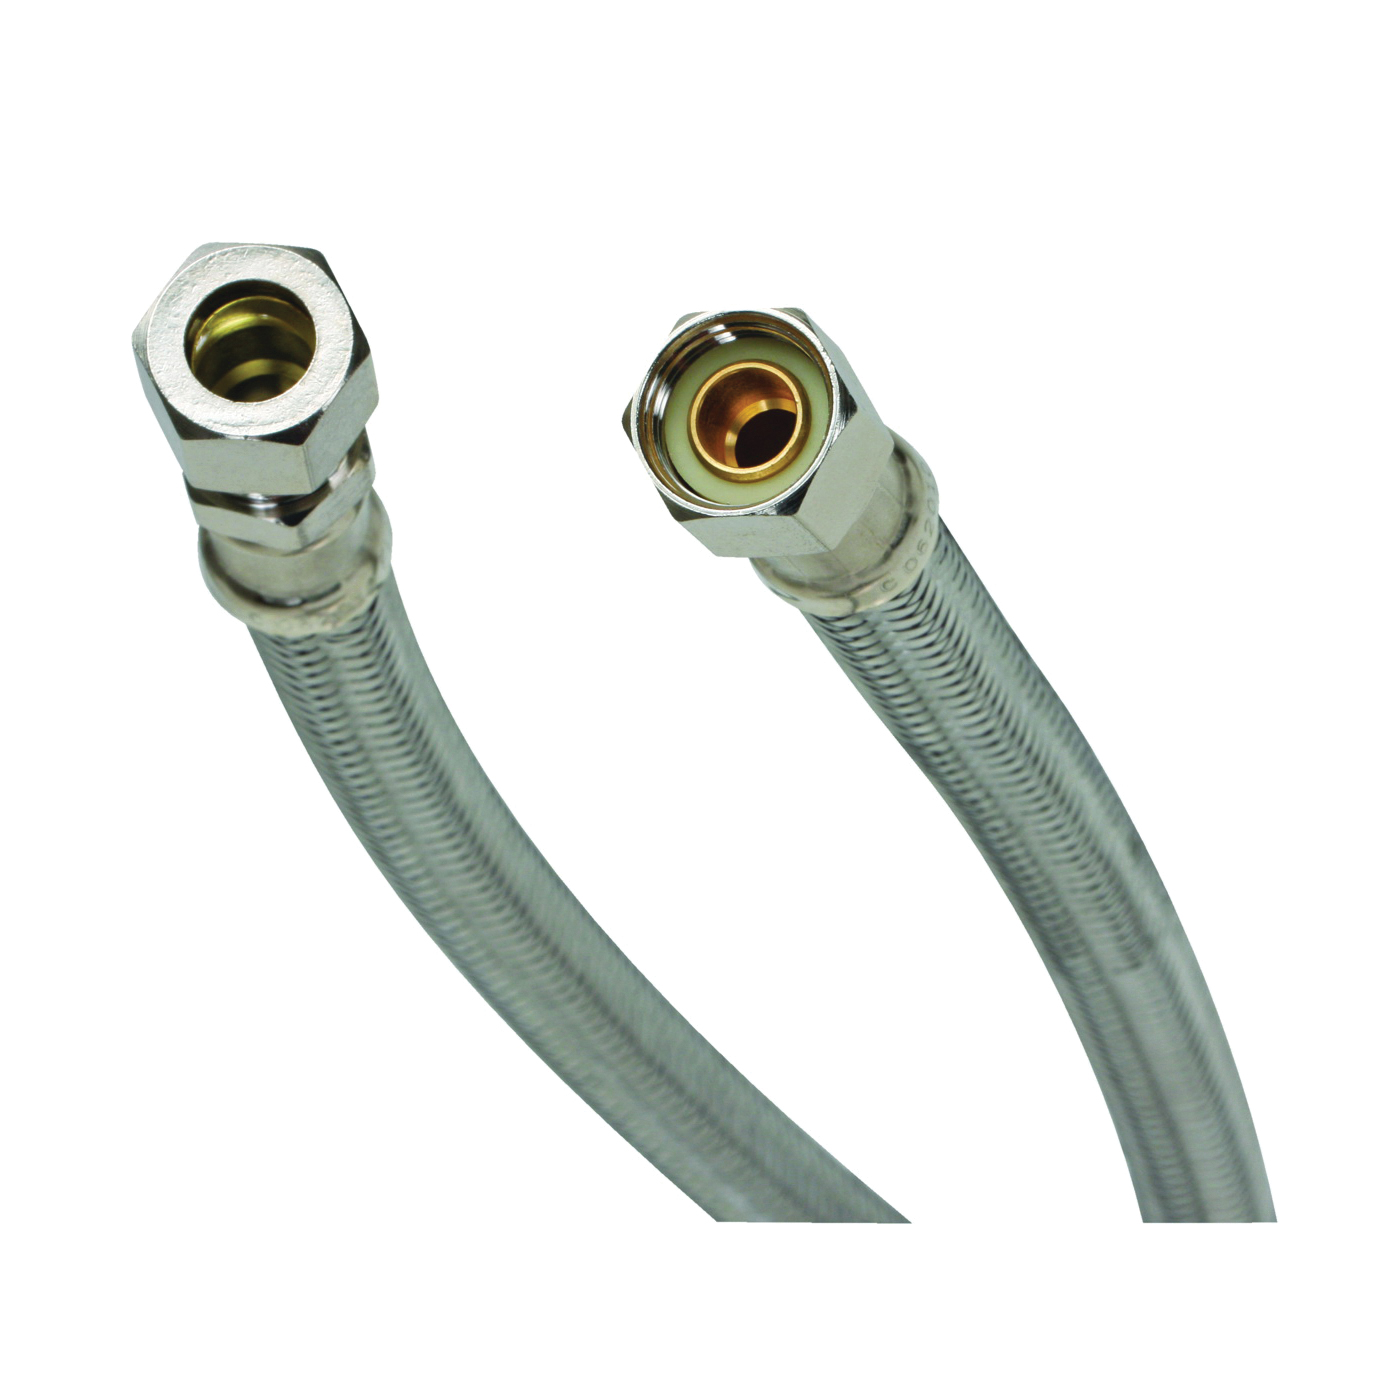 Picture of FLUIDMASTER B8F12 Water Supply Connector, 3/8 in, Compression, Polymer/Stainless Steel